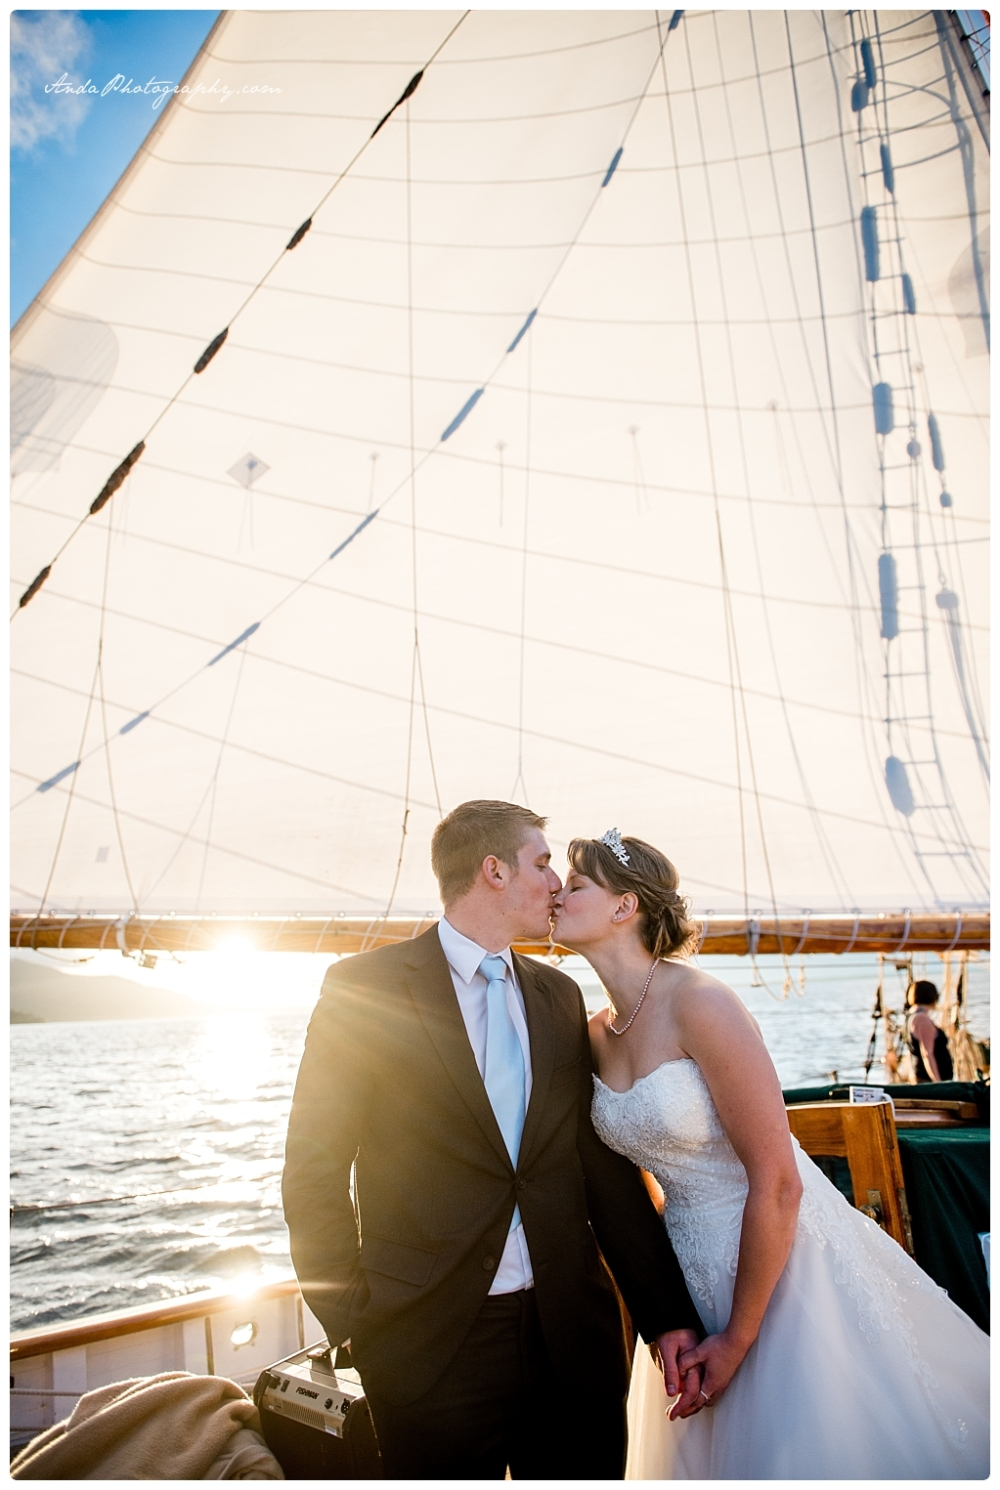 Anda Photography Bellingham wedding photographer seattle wedding photographer Schooner Zodiak Wedding photos_0054